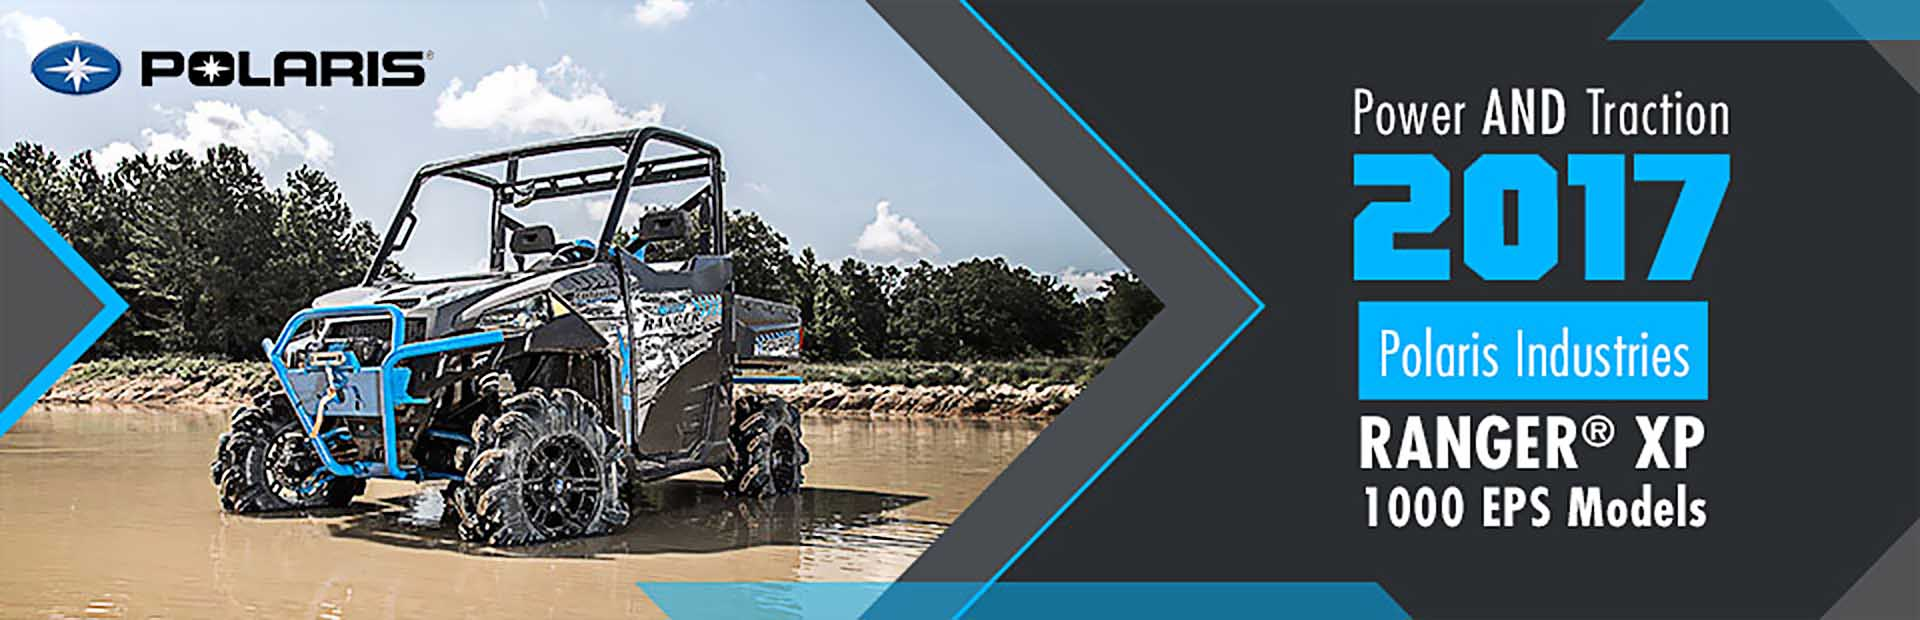 2017 Polaris Industries RANGER® XP 1000 EPS Models: Click here to view our selection.